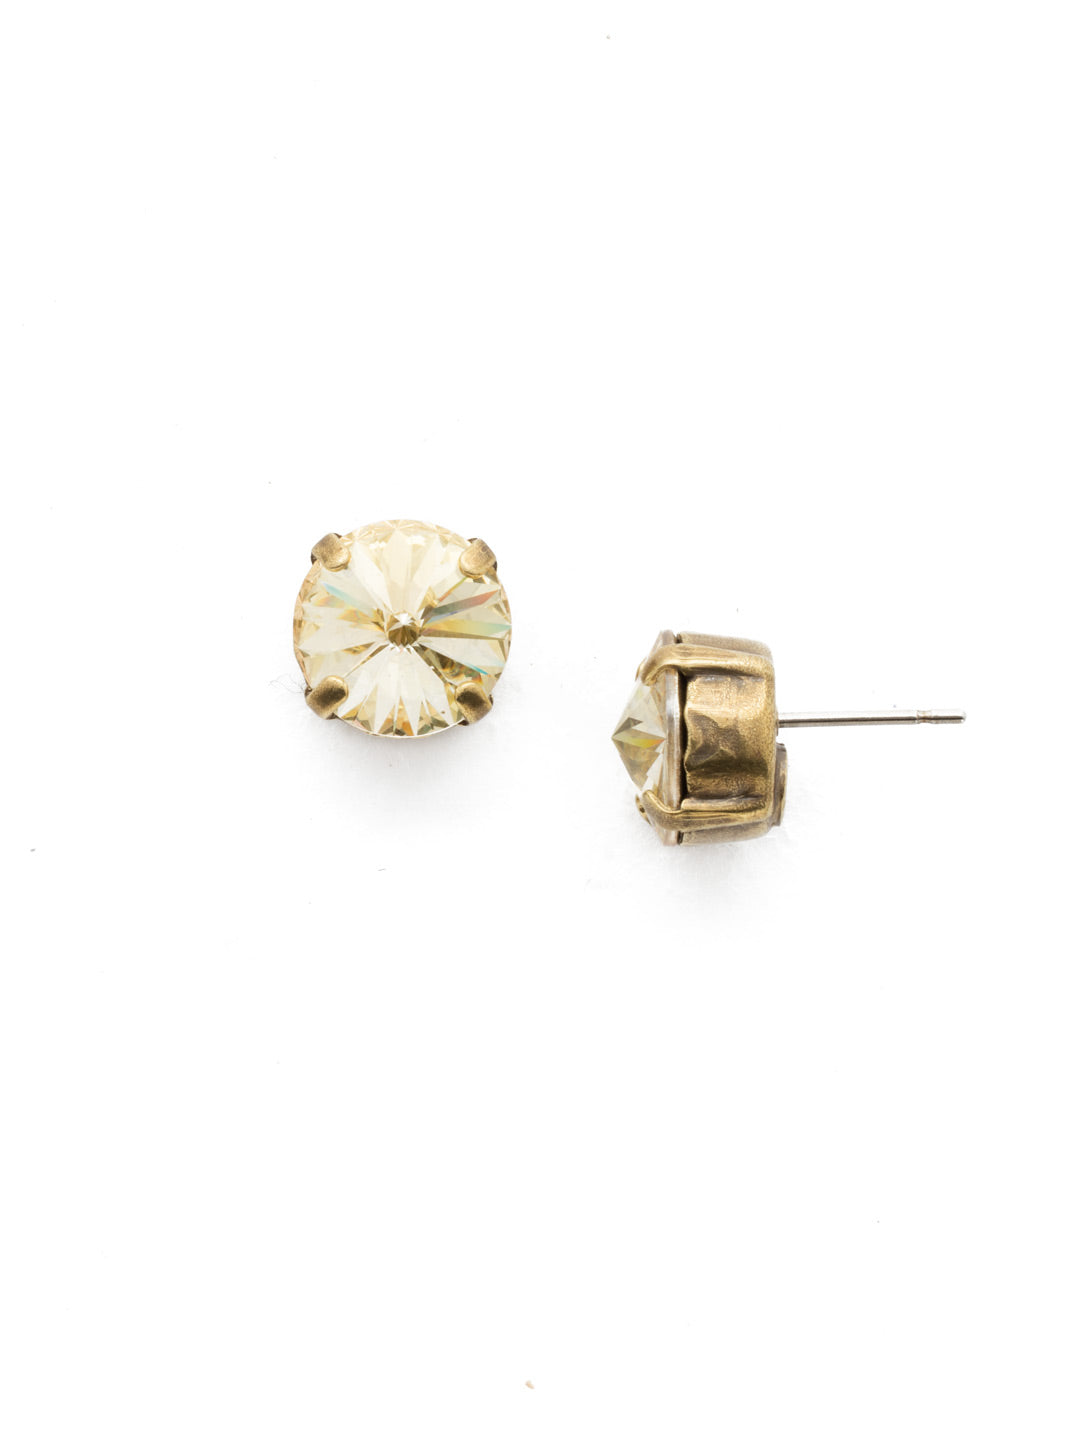 Round Crystal Stud Earrings - ECM14AGCCH